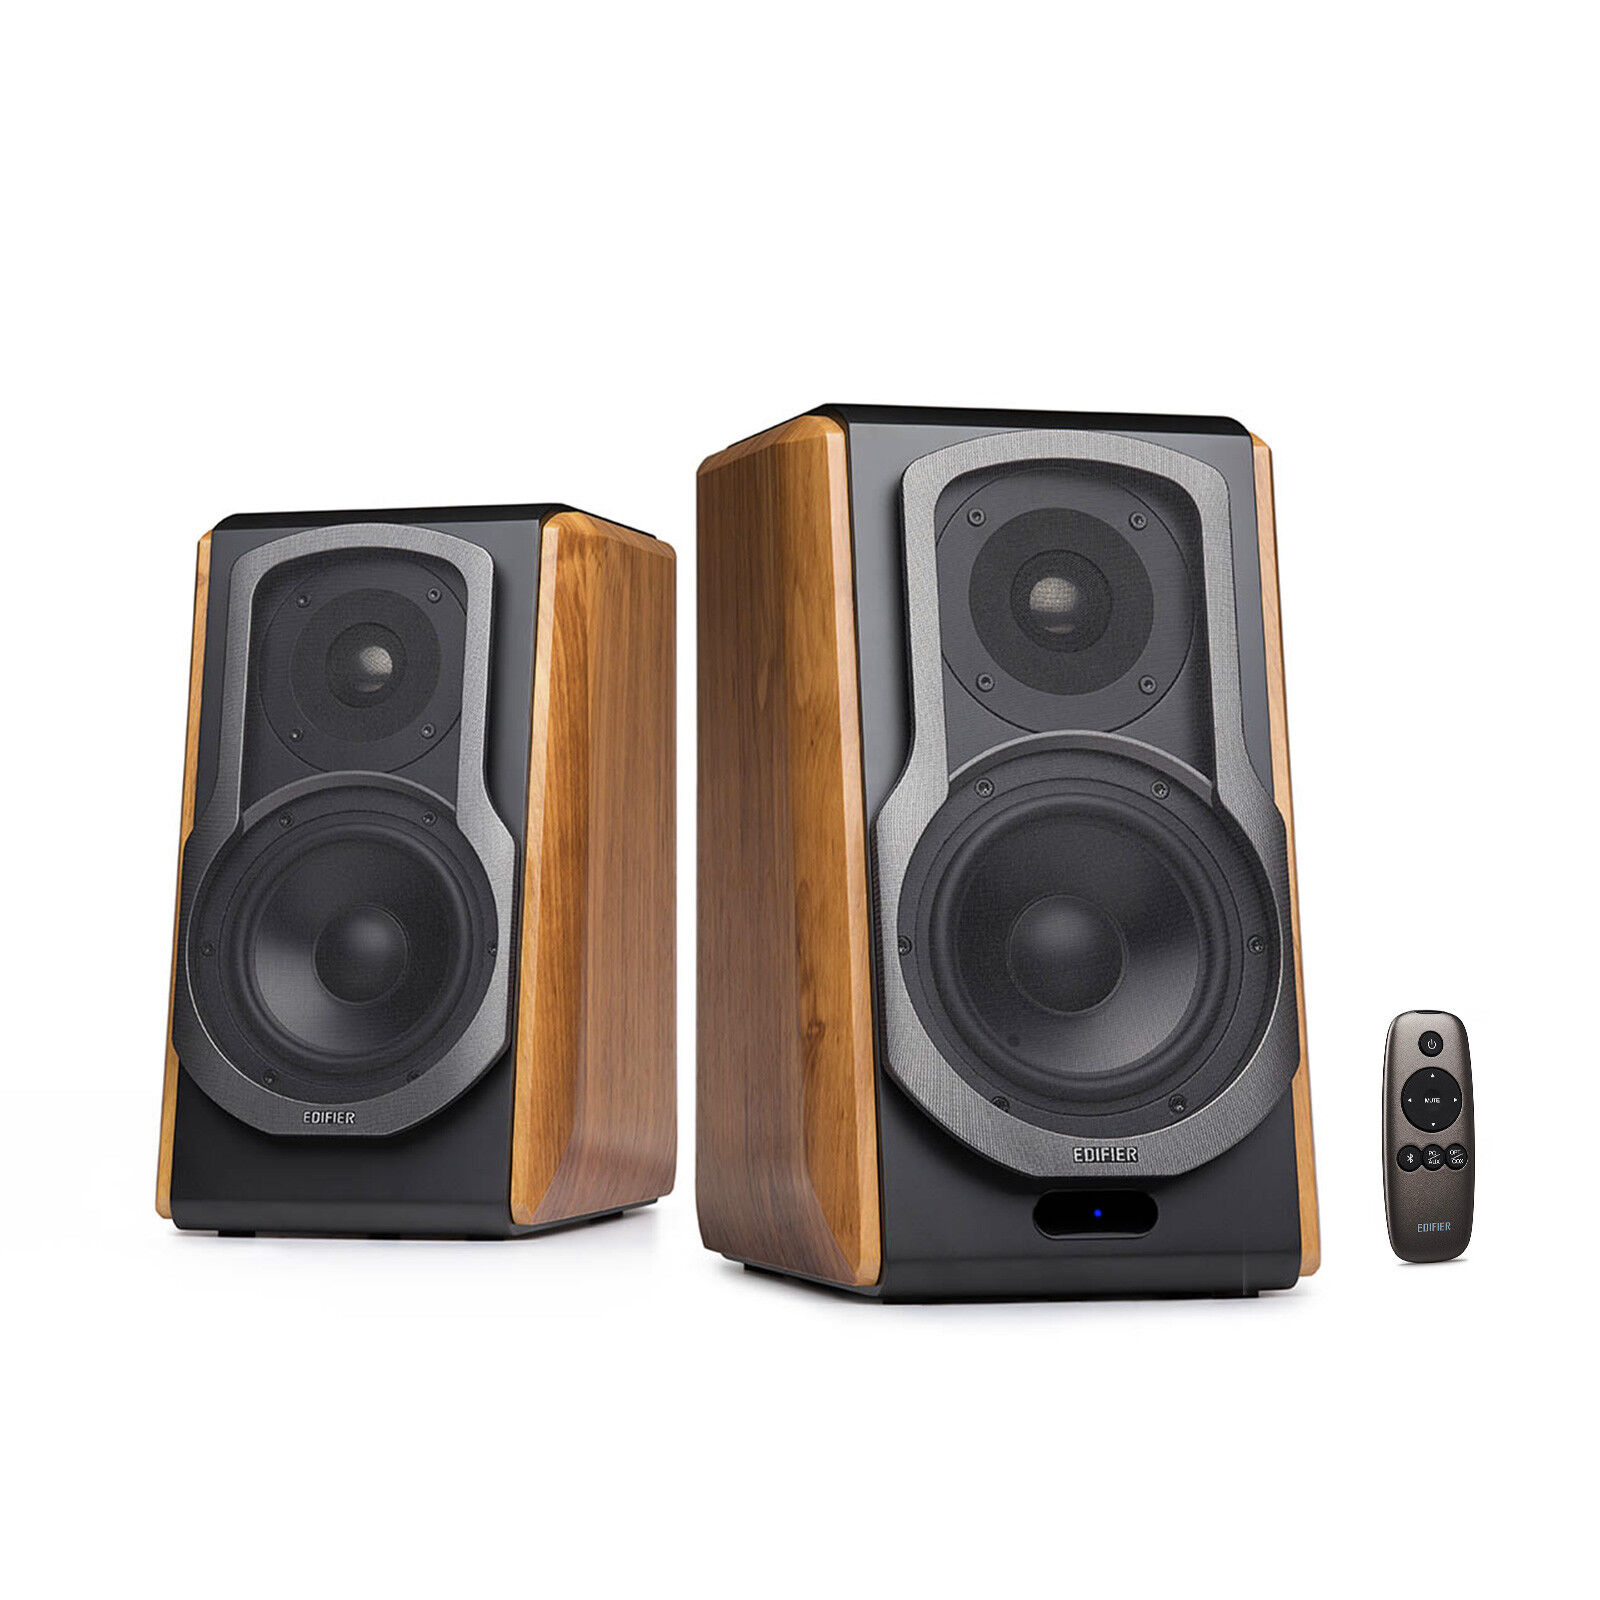 Edifier S1000DB Active Bookshelf Speakers - blueetooth 4.0 - Optical Input